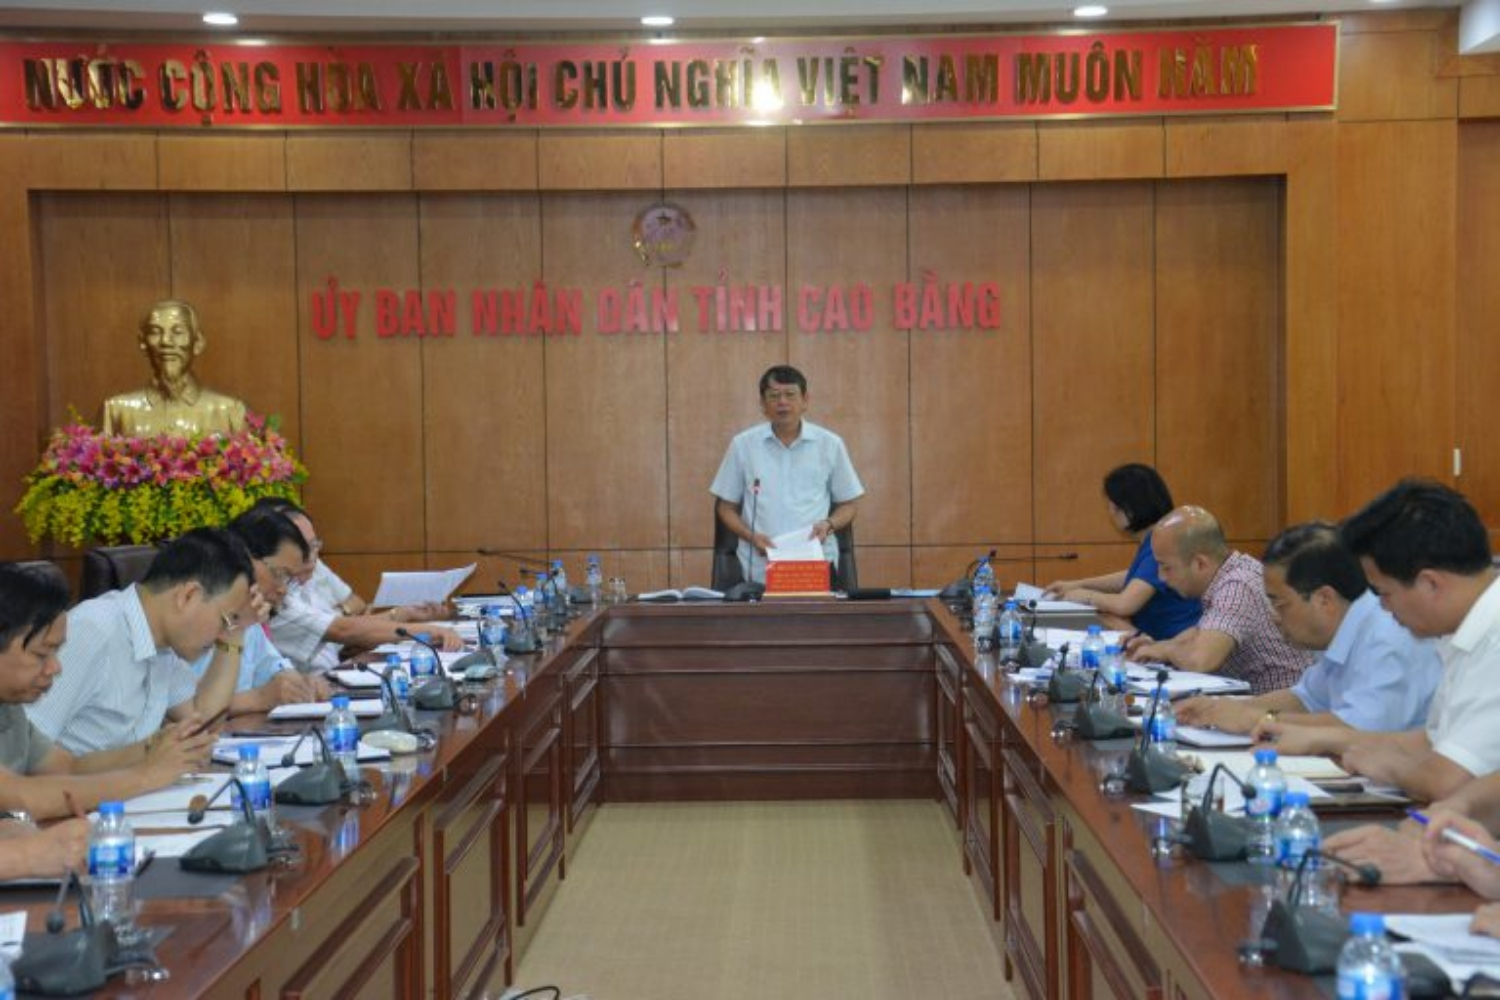 Chairman of People's committee of Cao Bang province Mr.Hoang Xuan Anh closed the meeting